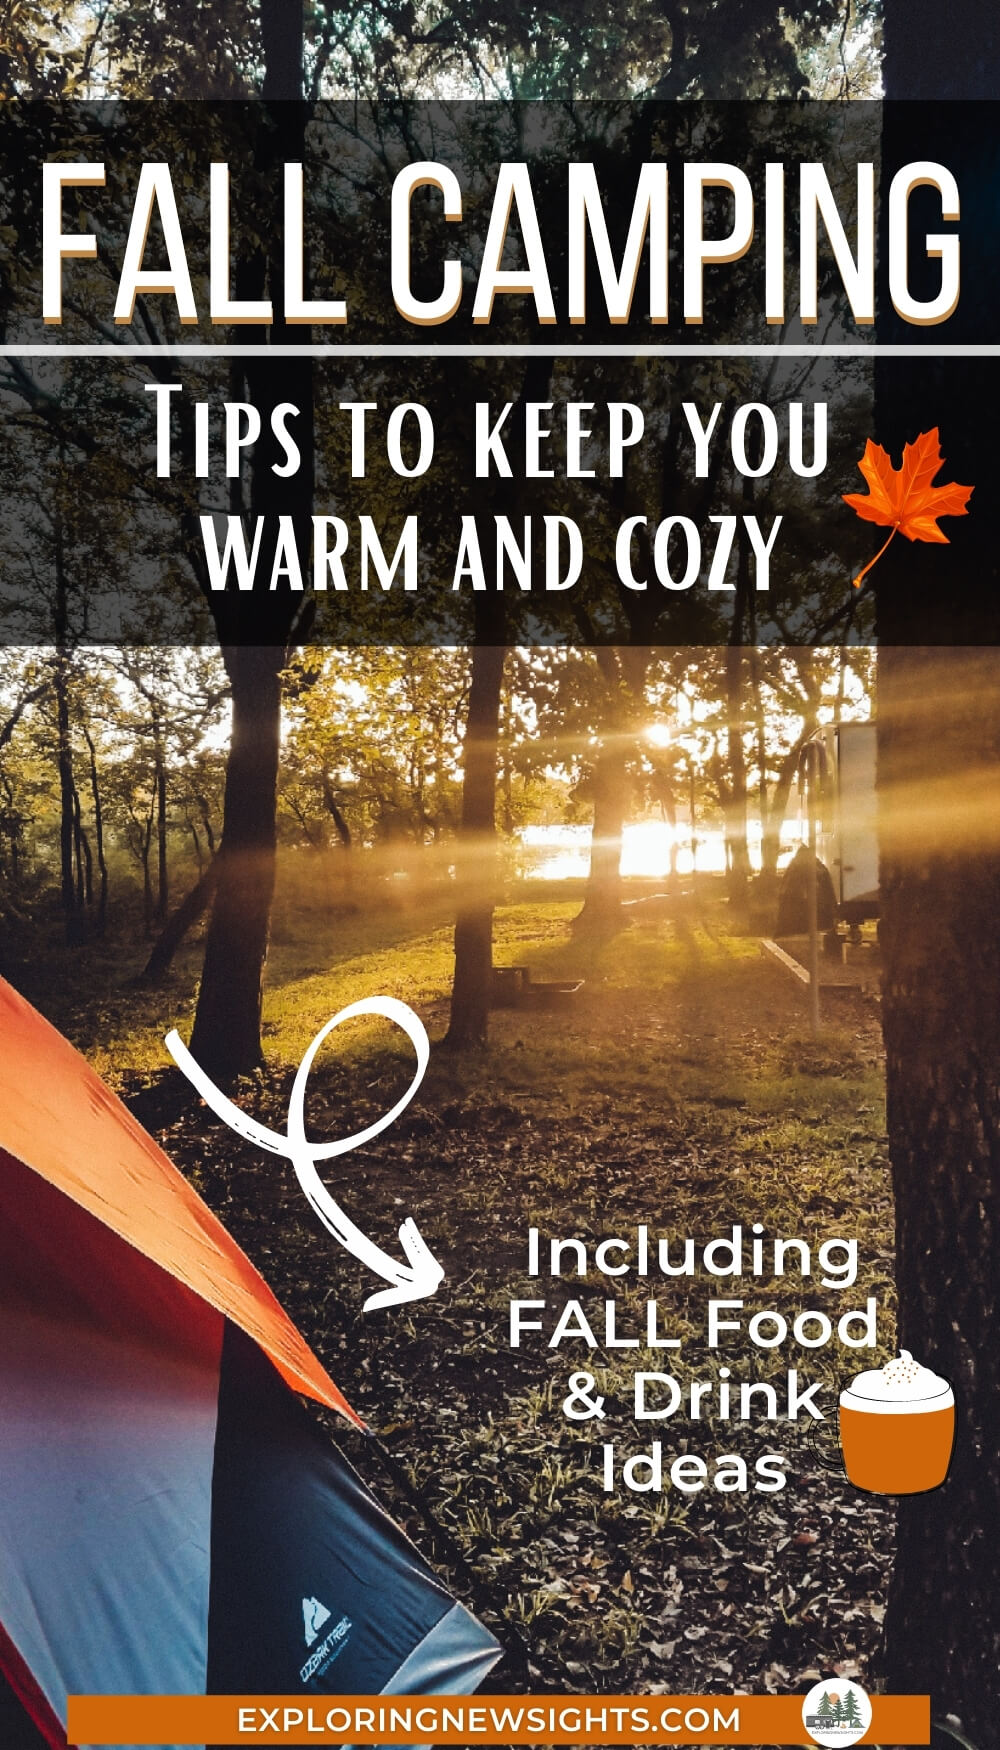 Fall Camping Tips with Fall Food ideas